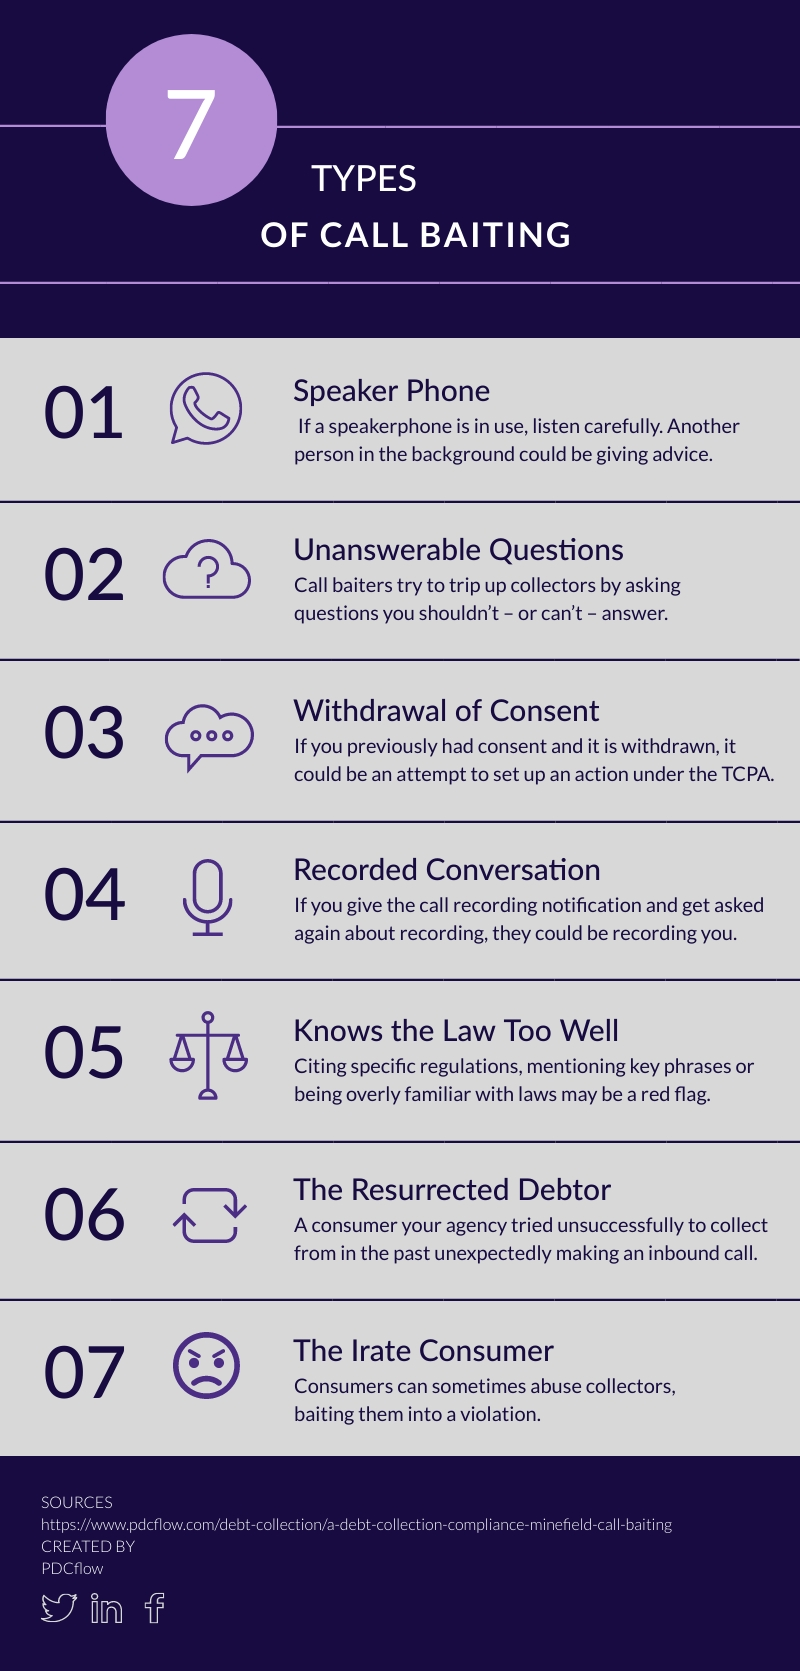 A Debt Collection Compliance Minefield: Call Baiting Infographic